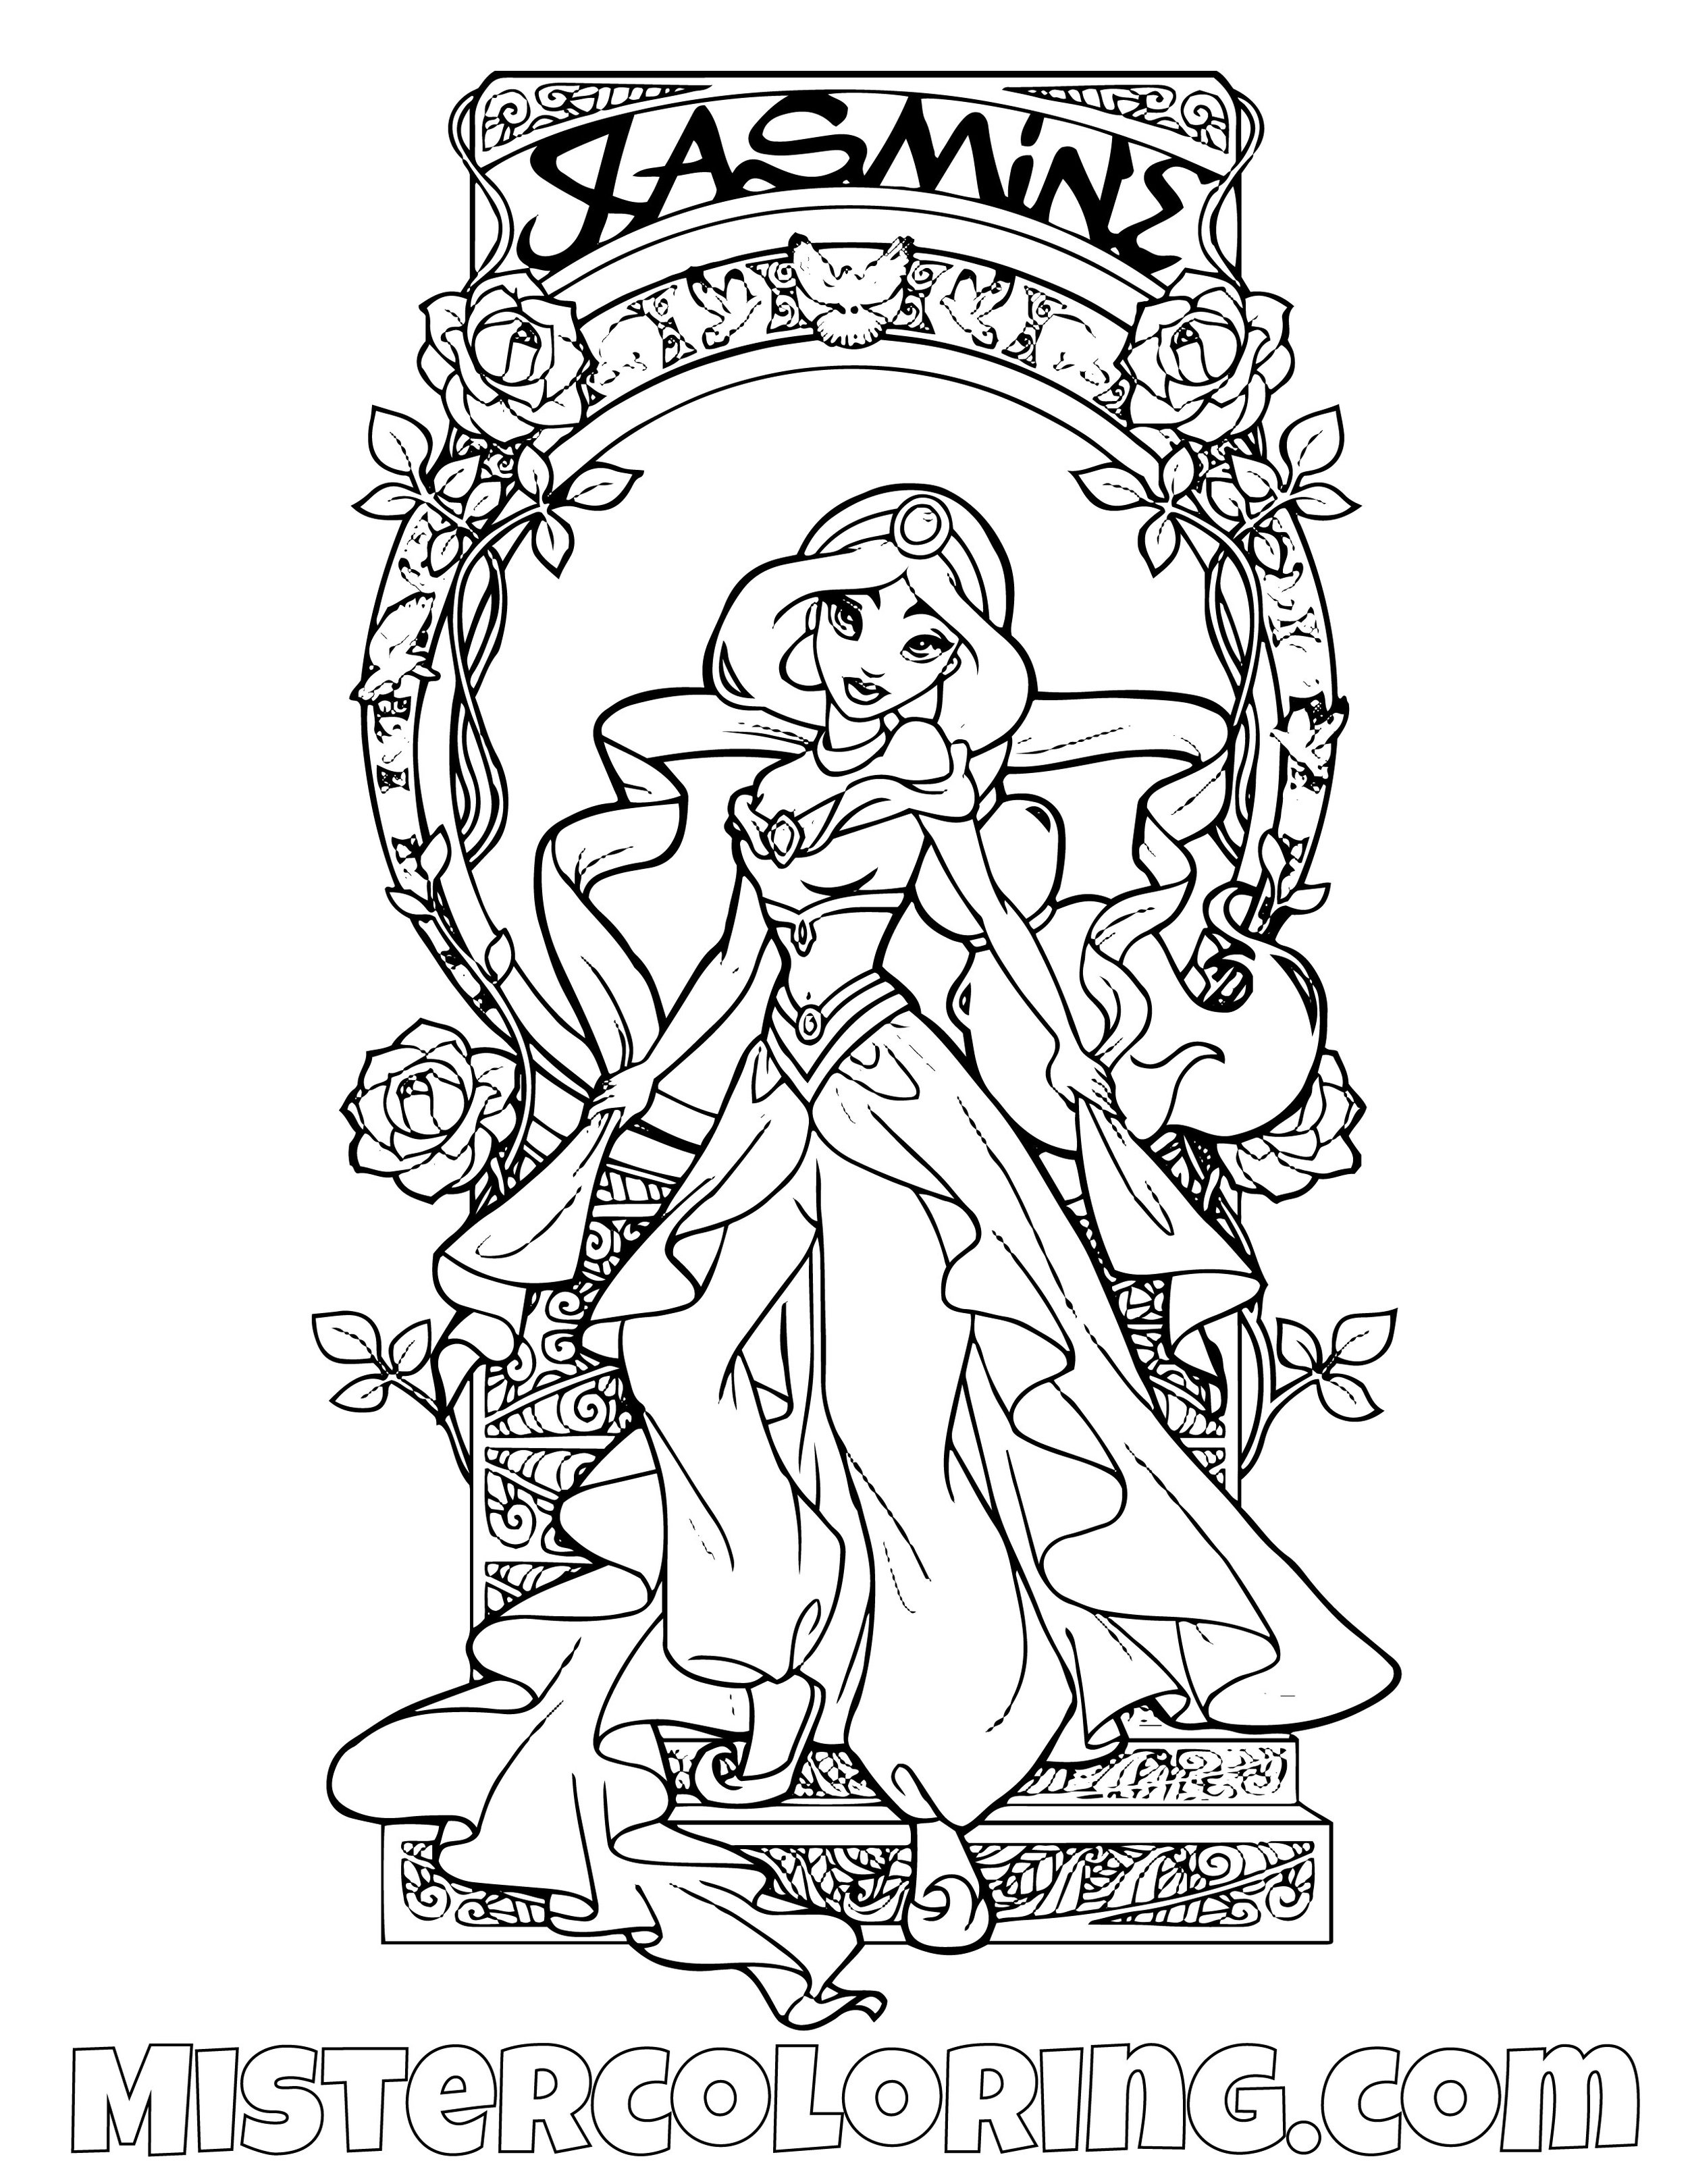 Princess Jasmine Cover Aladdin Coloring Page